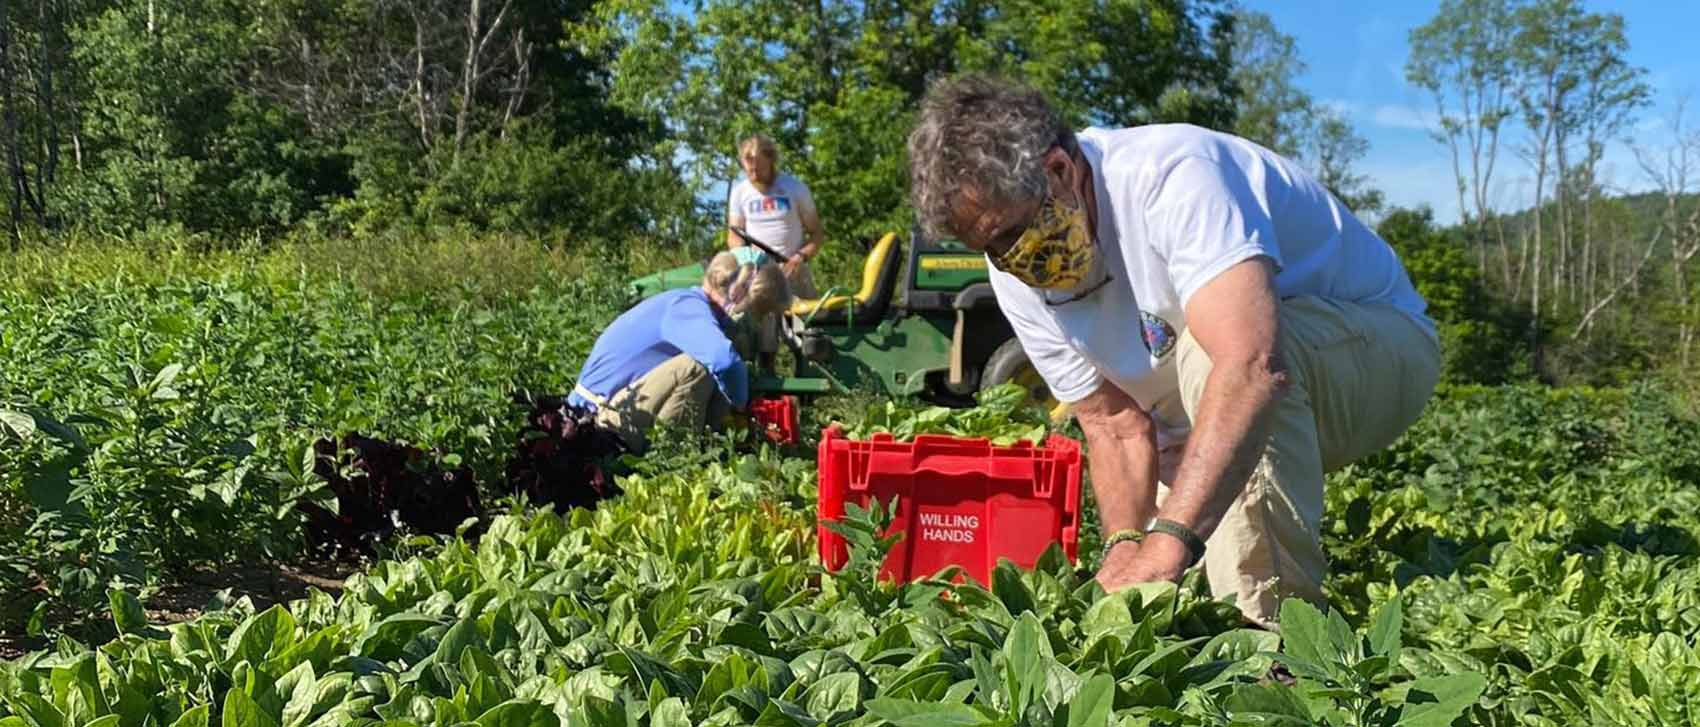 Milt & Carolyn Frye and Bob and Jane Greenberg (not pictured) volunteered in the first glean at Crossroad Farm in mid-June harvesting 100+ pounds of spinach for WH recipient organizations!